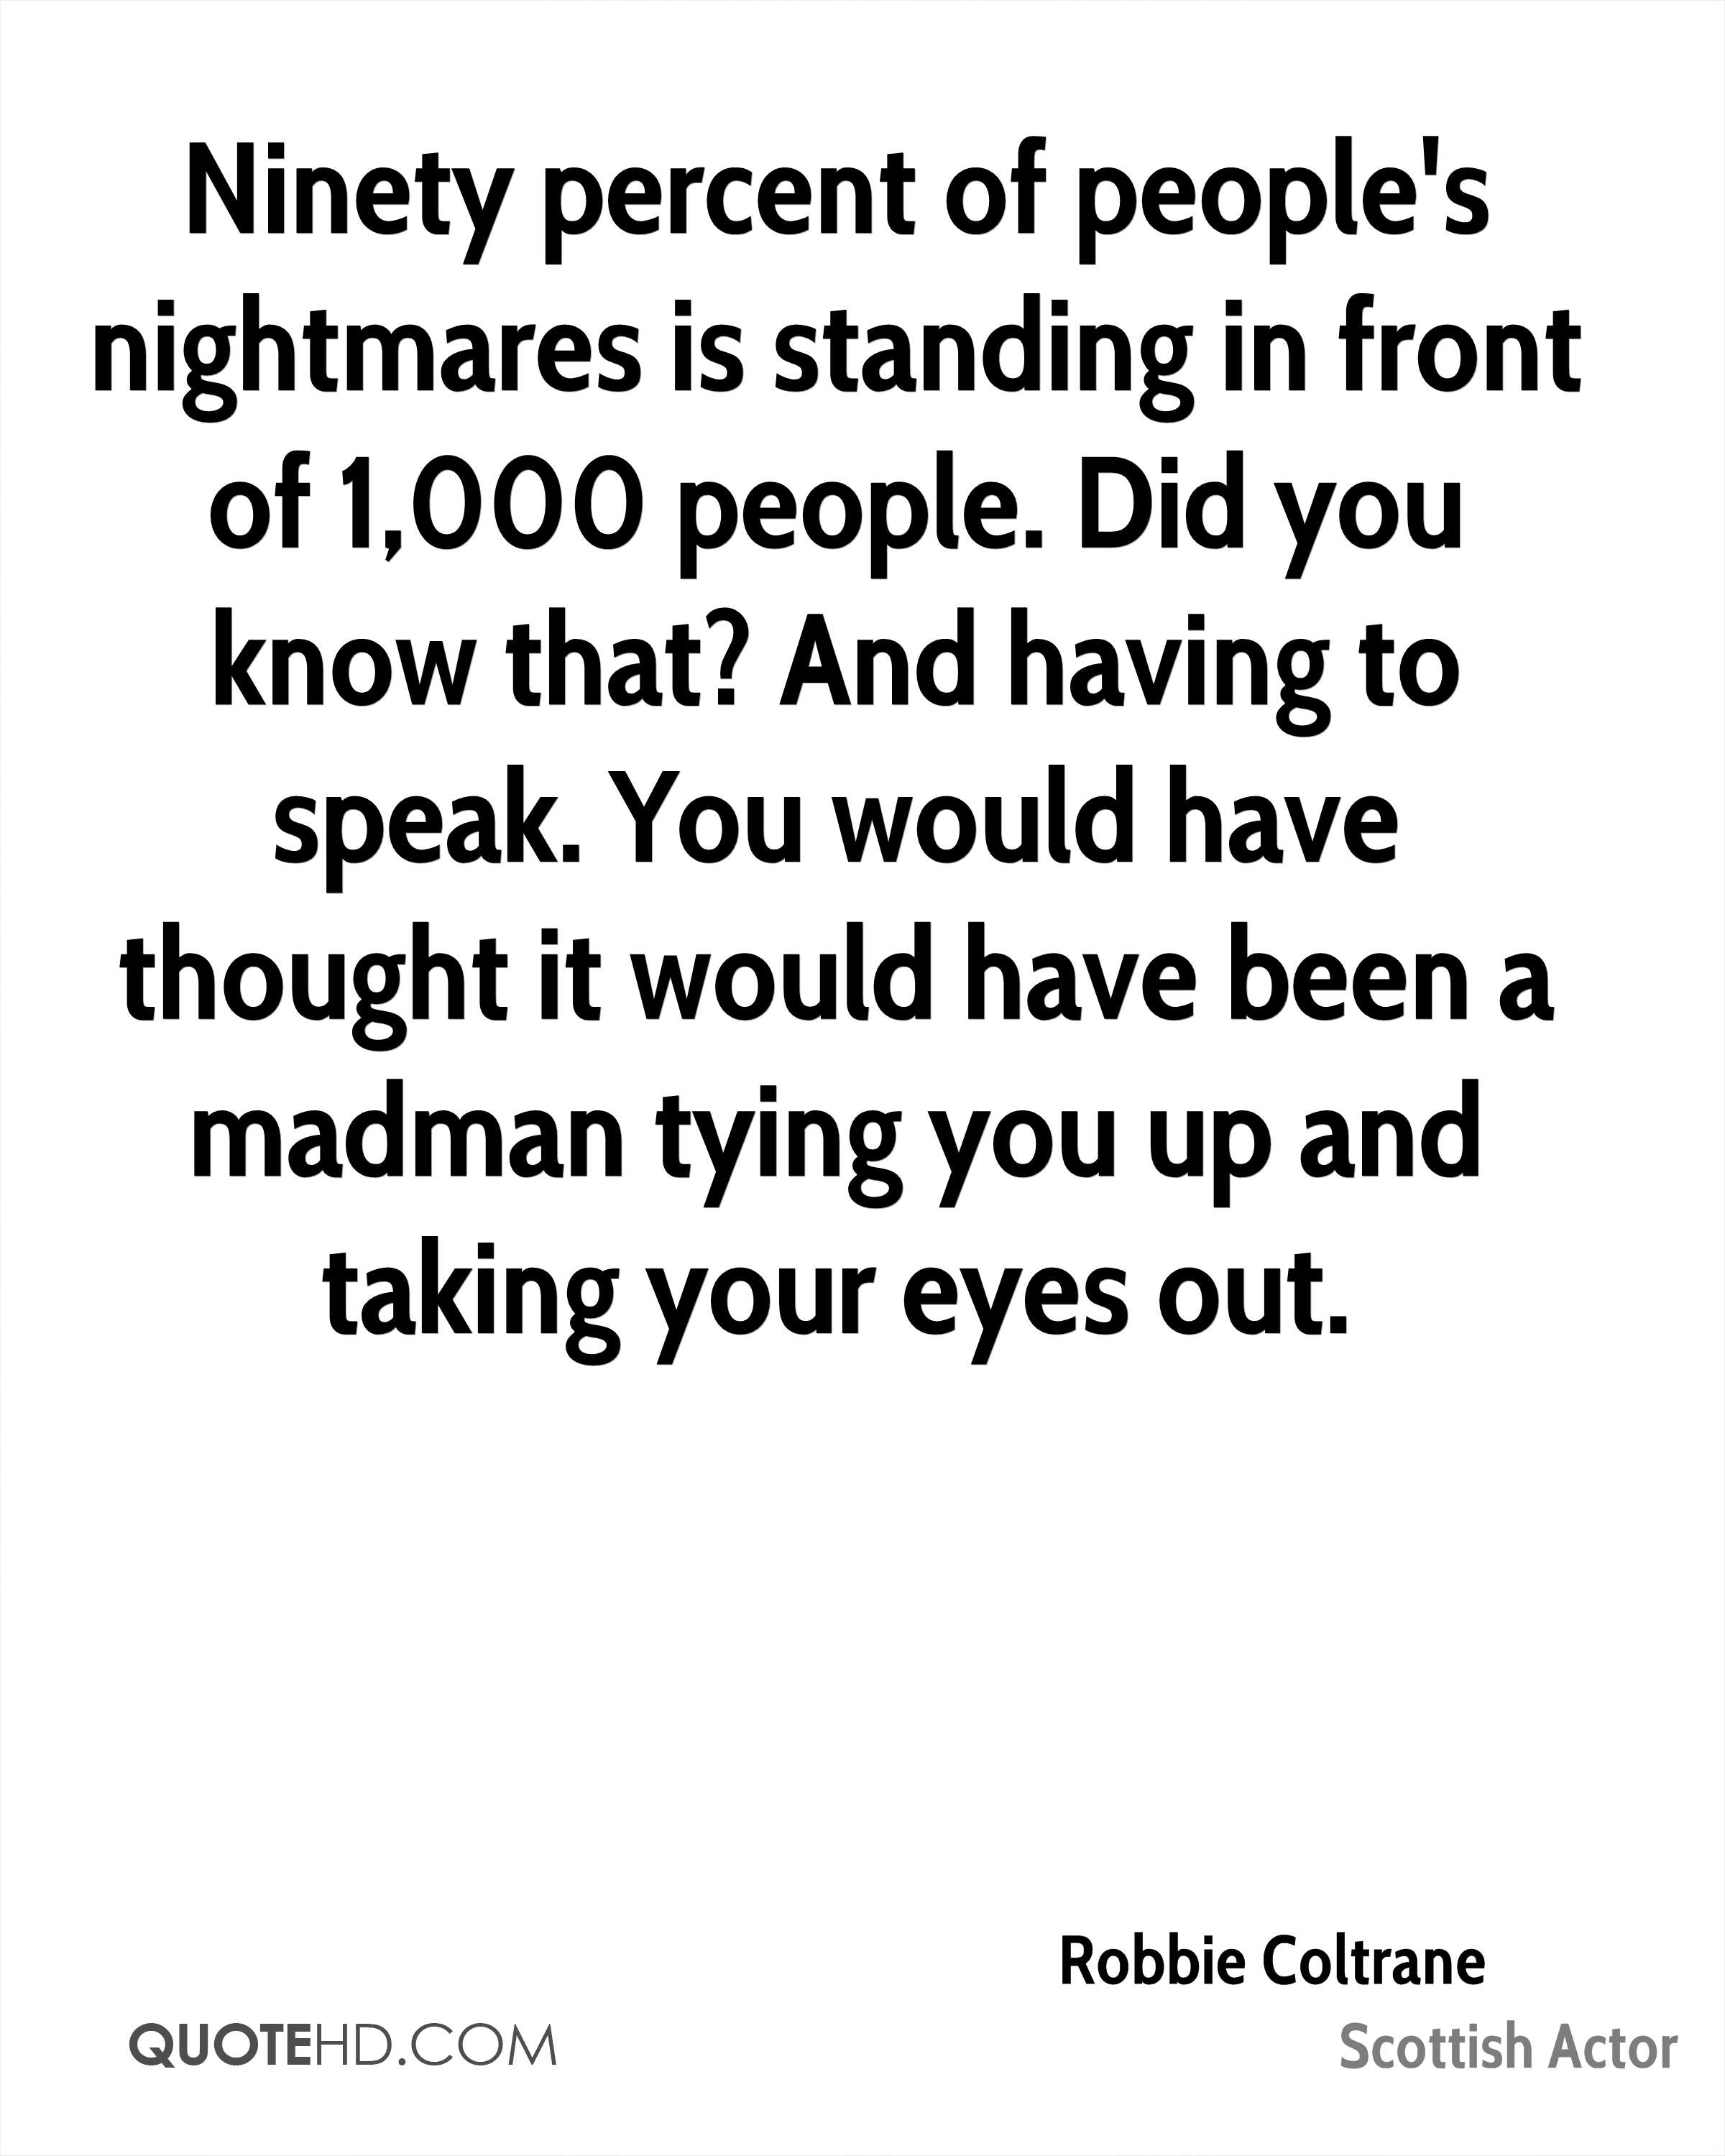 Ninety percent of people's nightmares is standing in front of 1,000 people. Did you know that? And having to speak. You would have thought it would have been a madman tying you up and taking your eyes out.